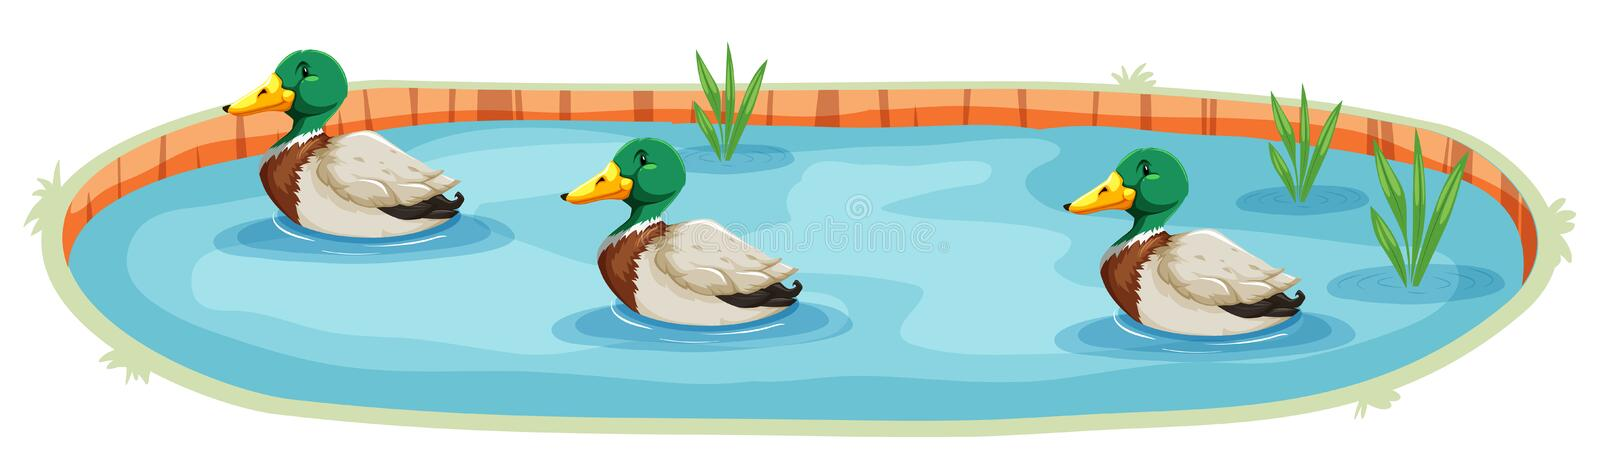 An isolated duck pond. Illustration royalty free illustration